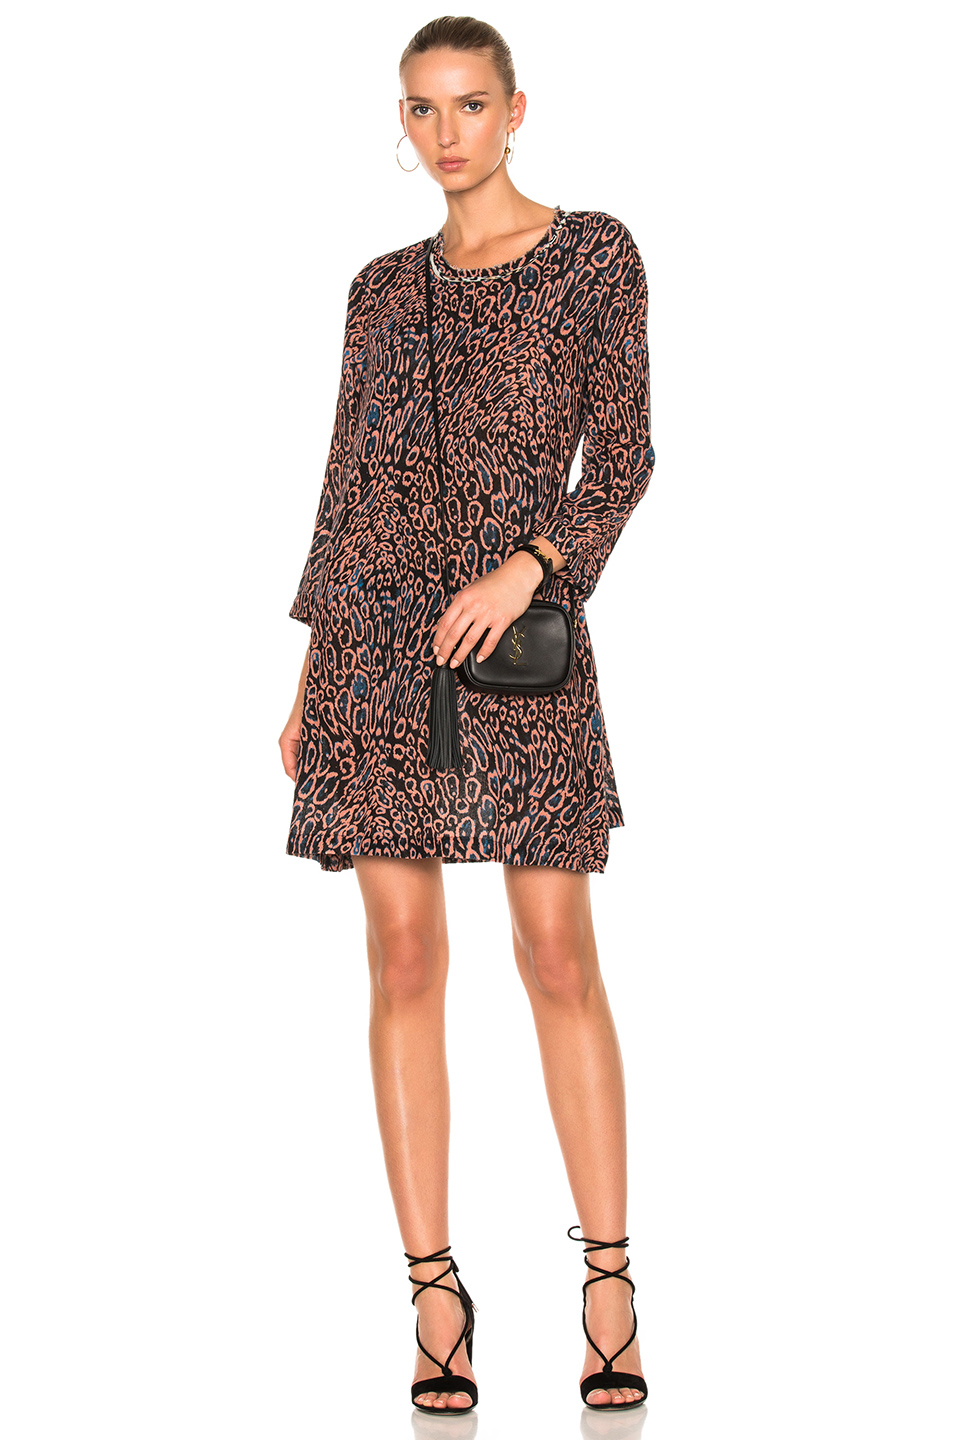 Raquel Allegra Long Sleeve Bell Dress in Animal Print,Black,Orange